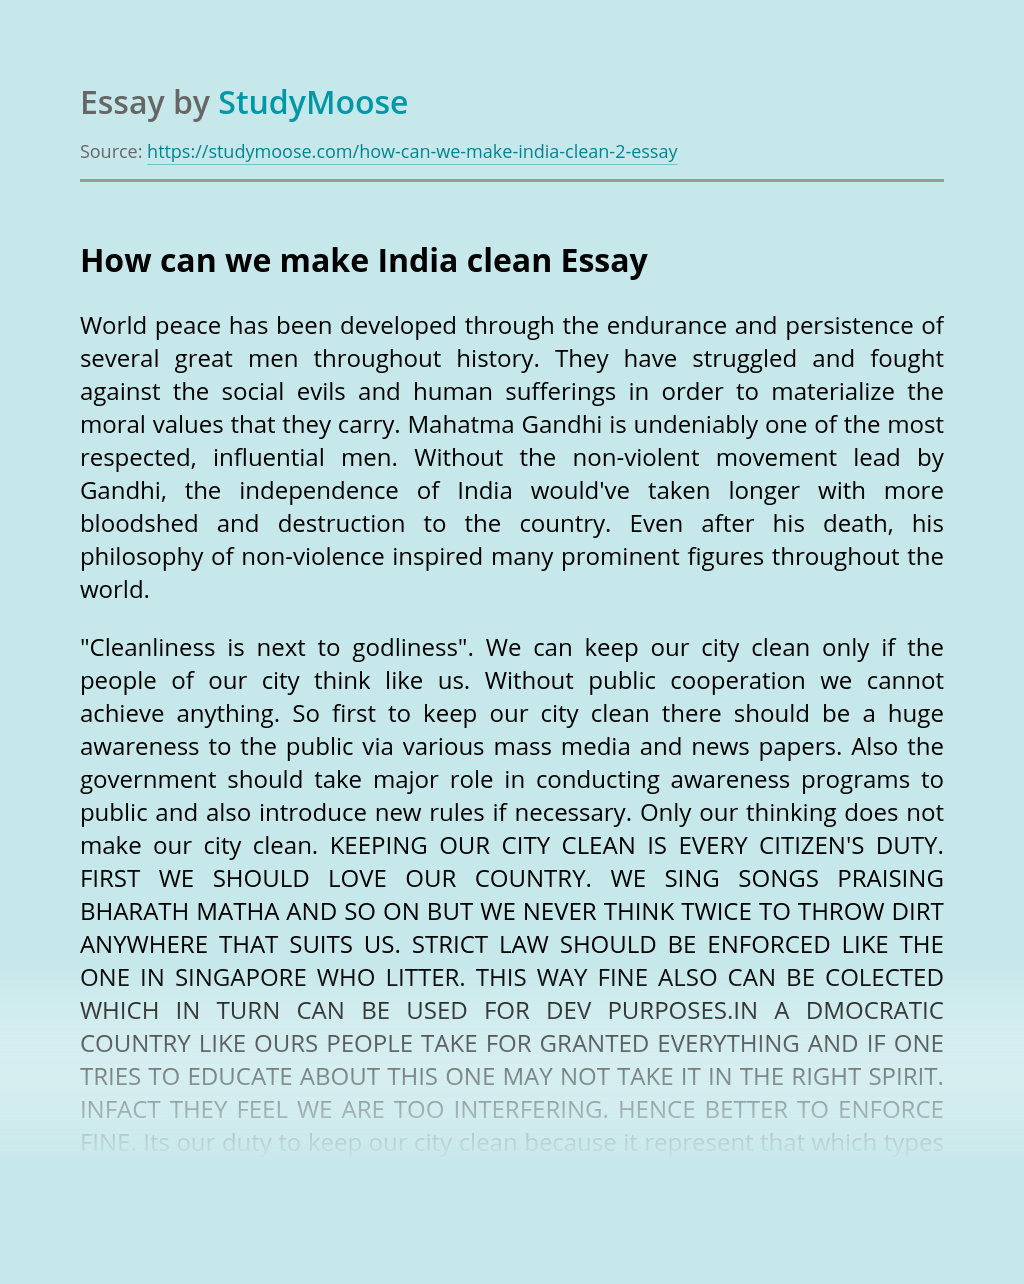 How can we make India clean